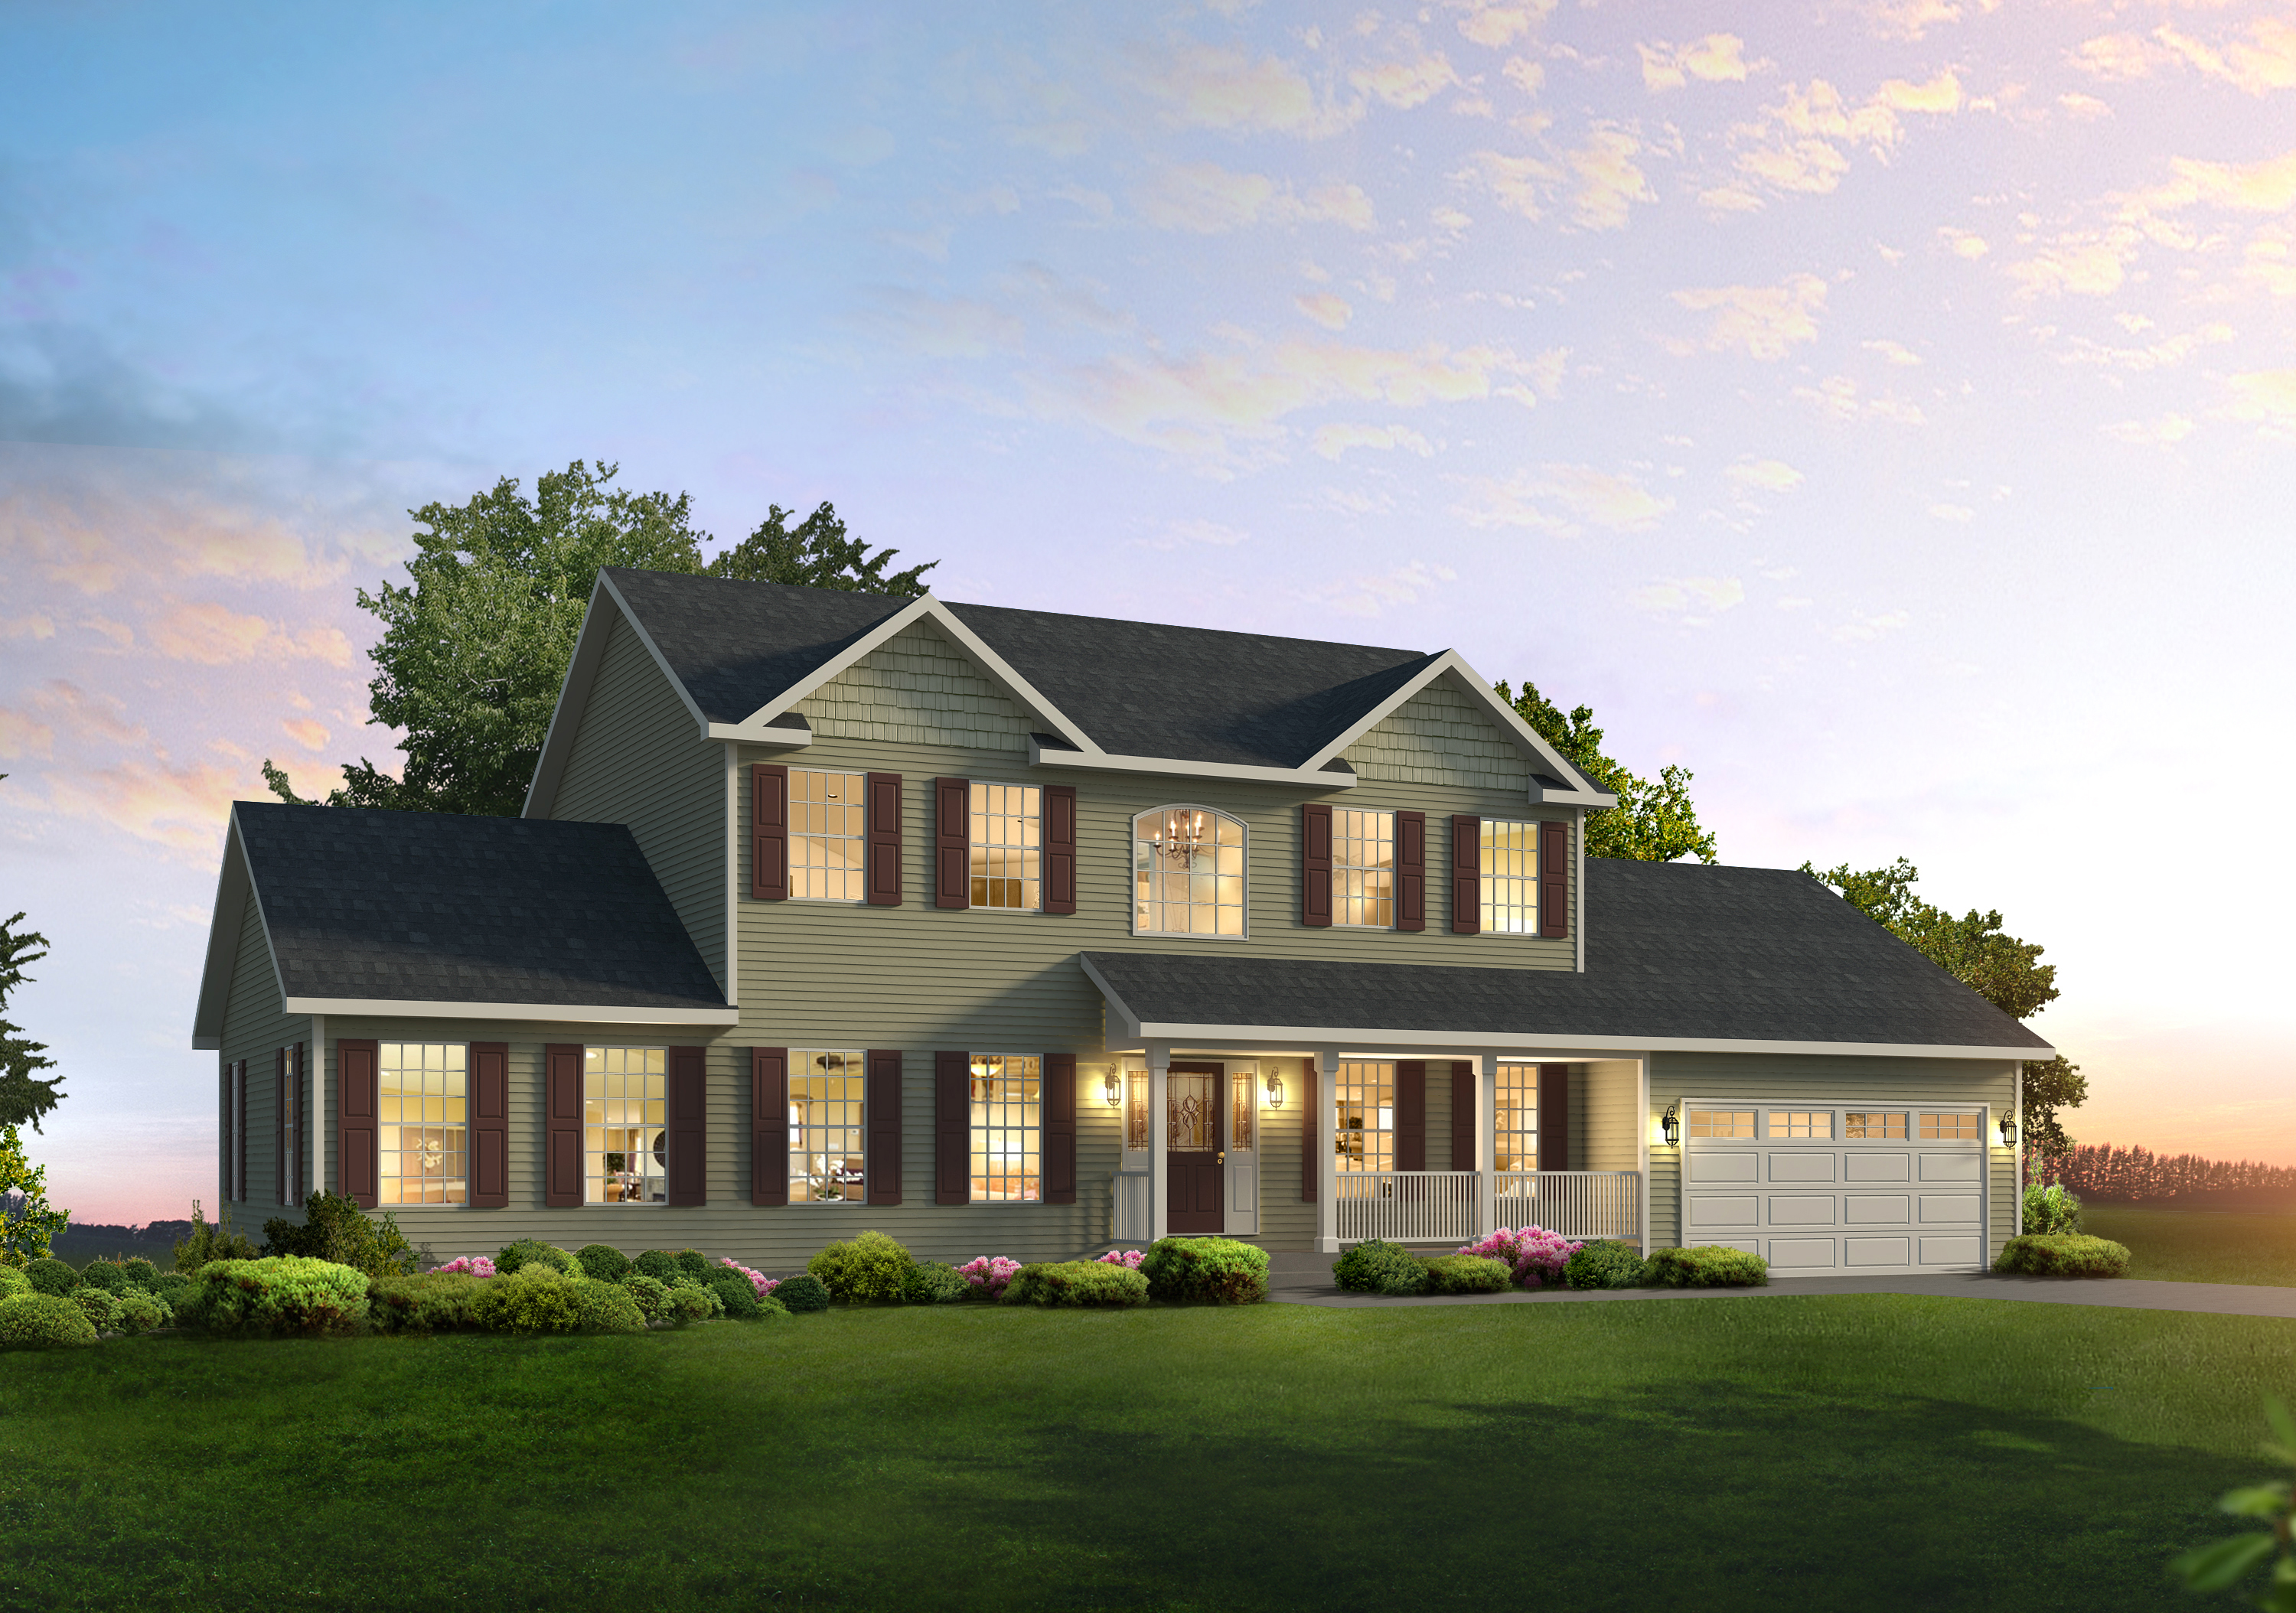 Our Model Homes in Richfield Springs, NY